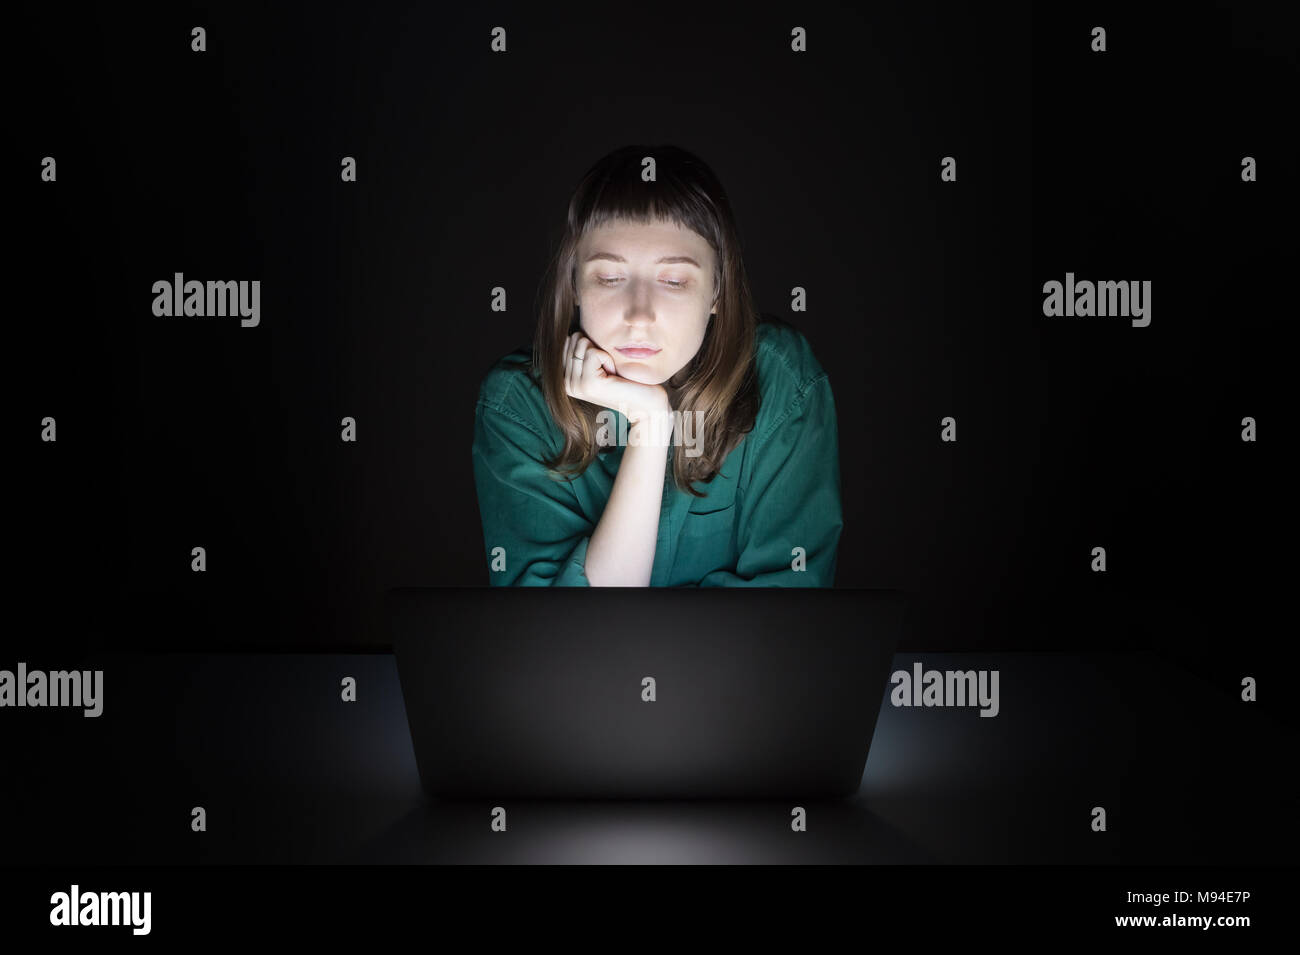 Woman at laptop computer indoors late in the evening. Portrait of young female student or worker sitting in front of computer screen at night and read - Stock Image